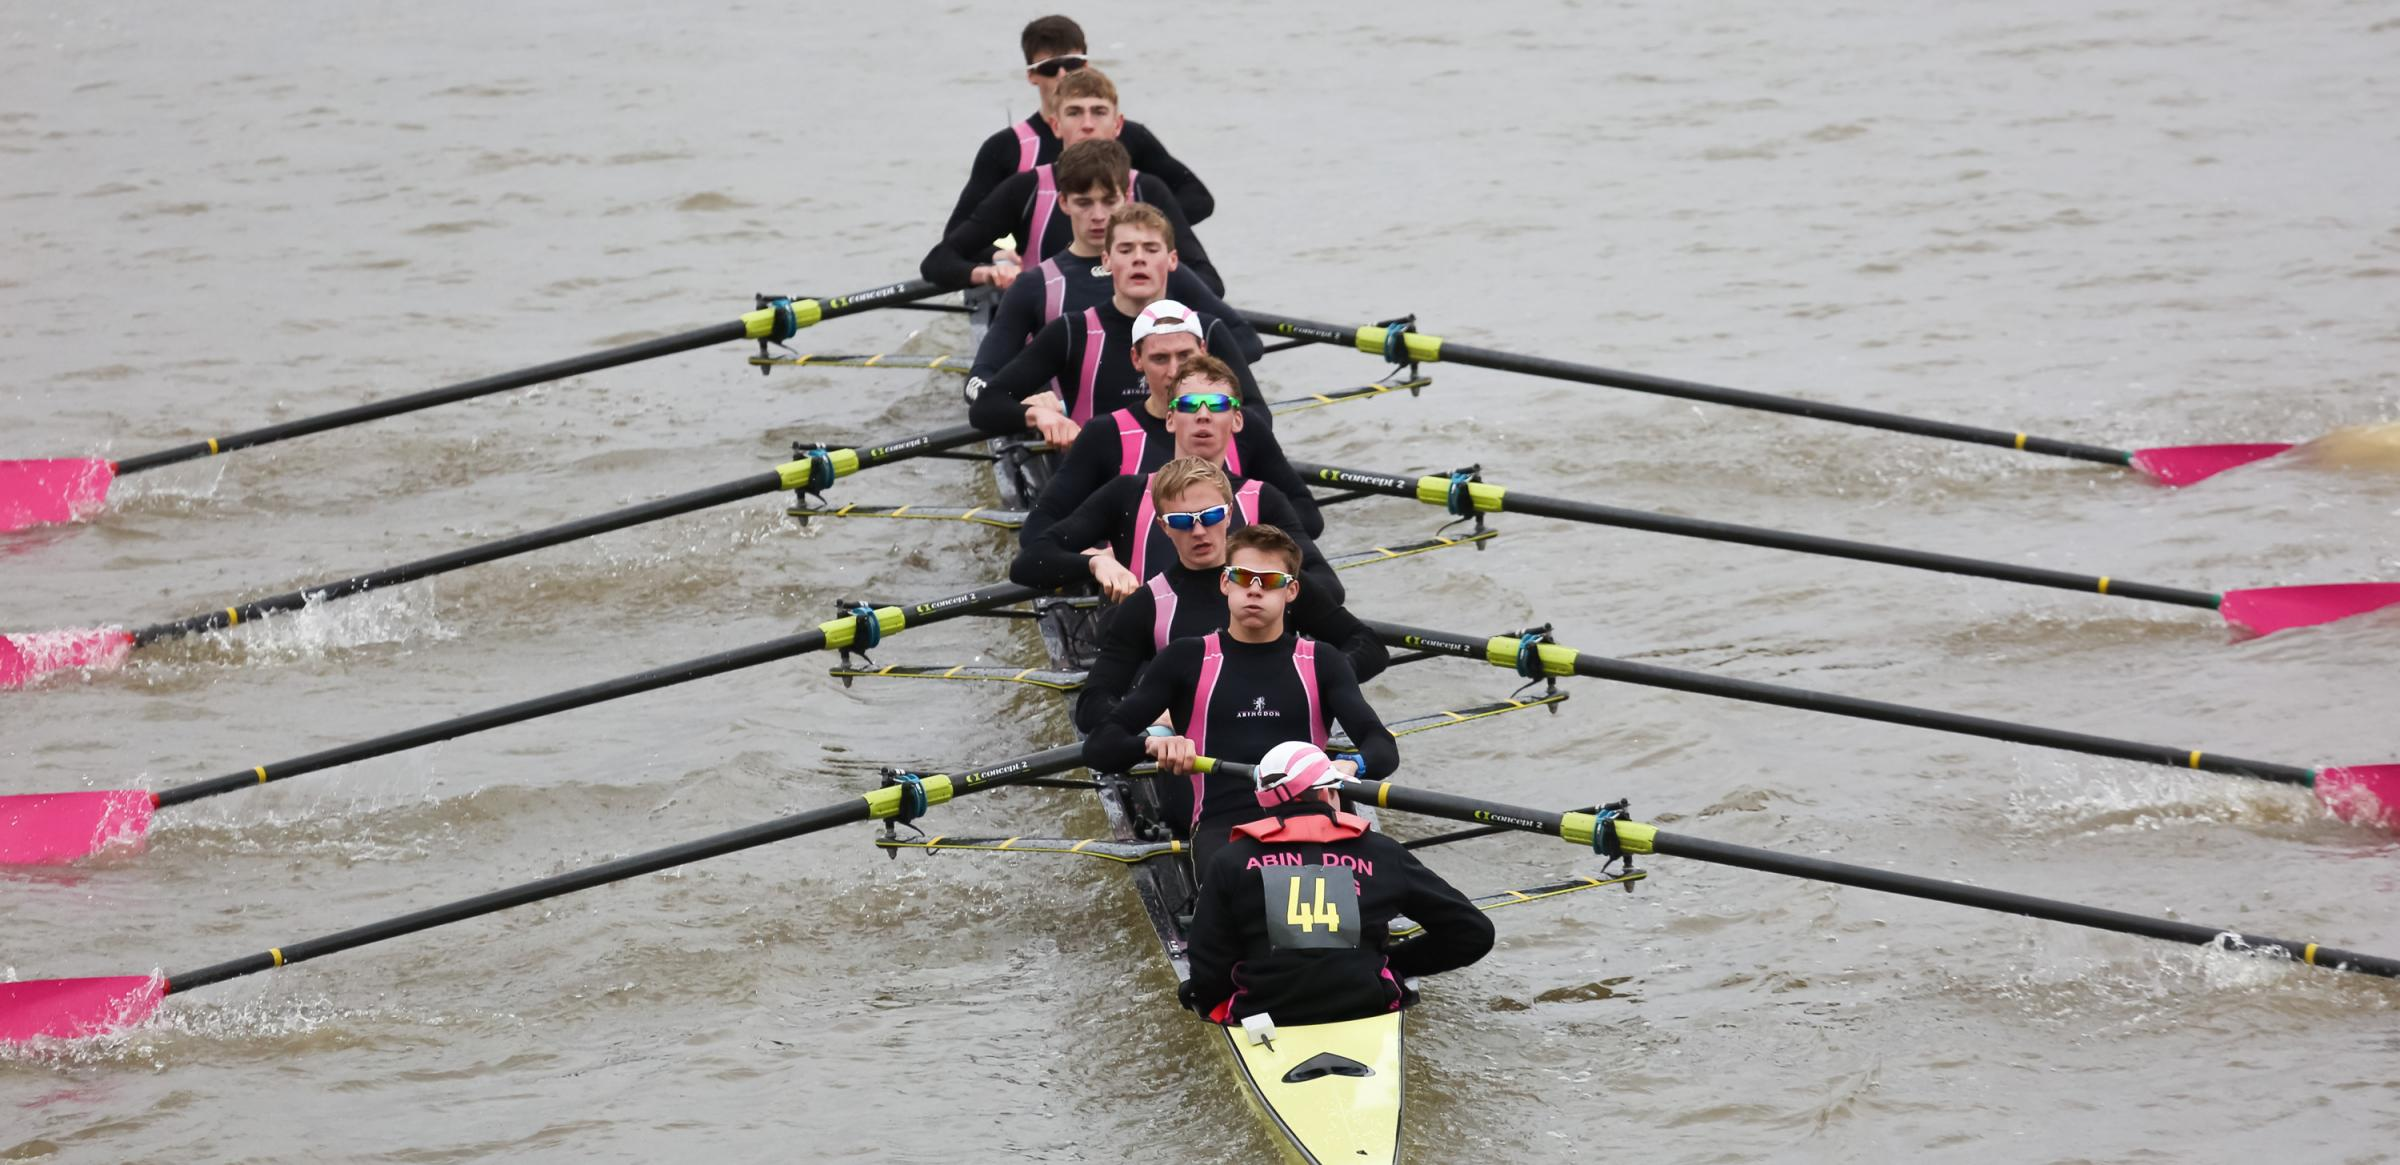 Abingdon School's eight head for second place (from top left): Charlie Hall, Henry Muller, Joseph Nash, Daniel Wilmot, Josh Braithwaite, Ed Fry, Matthew Wiblin, Connor Brown and cox, Joseph Salter Picture: Ben Rodford Photography